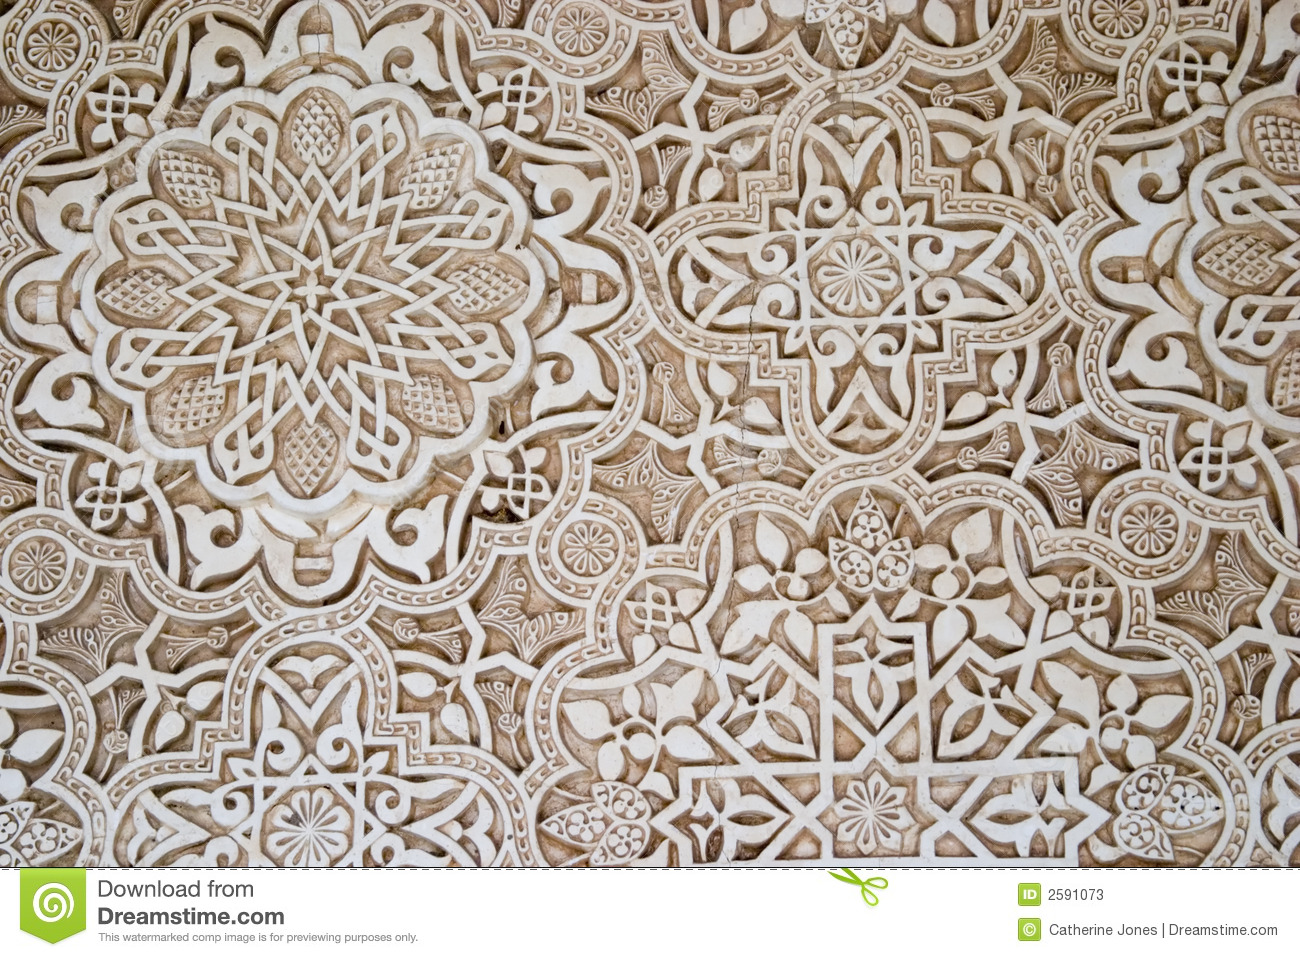 islamic art and architecture stock photos - image: 2591073